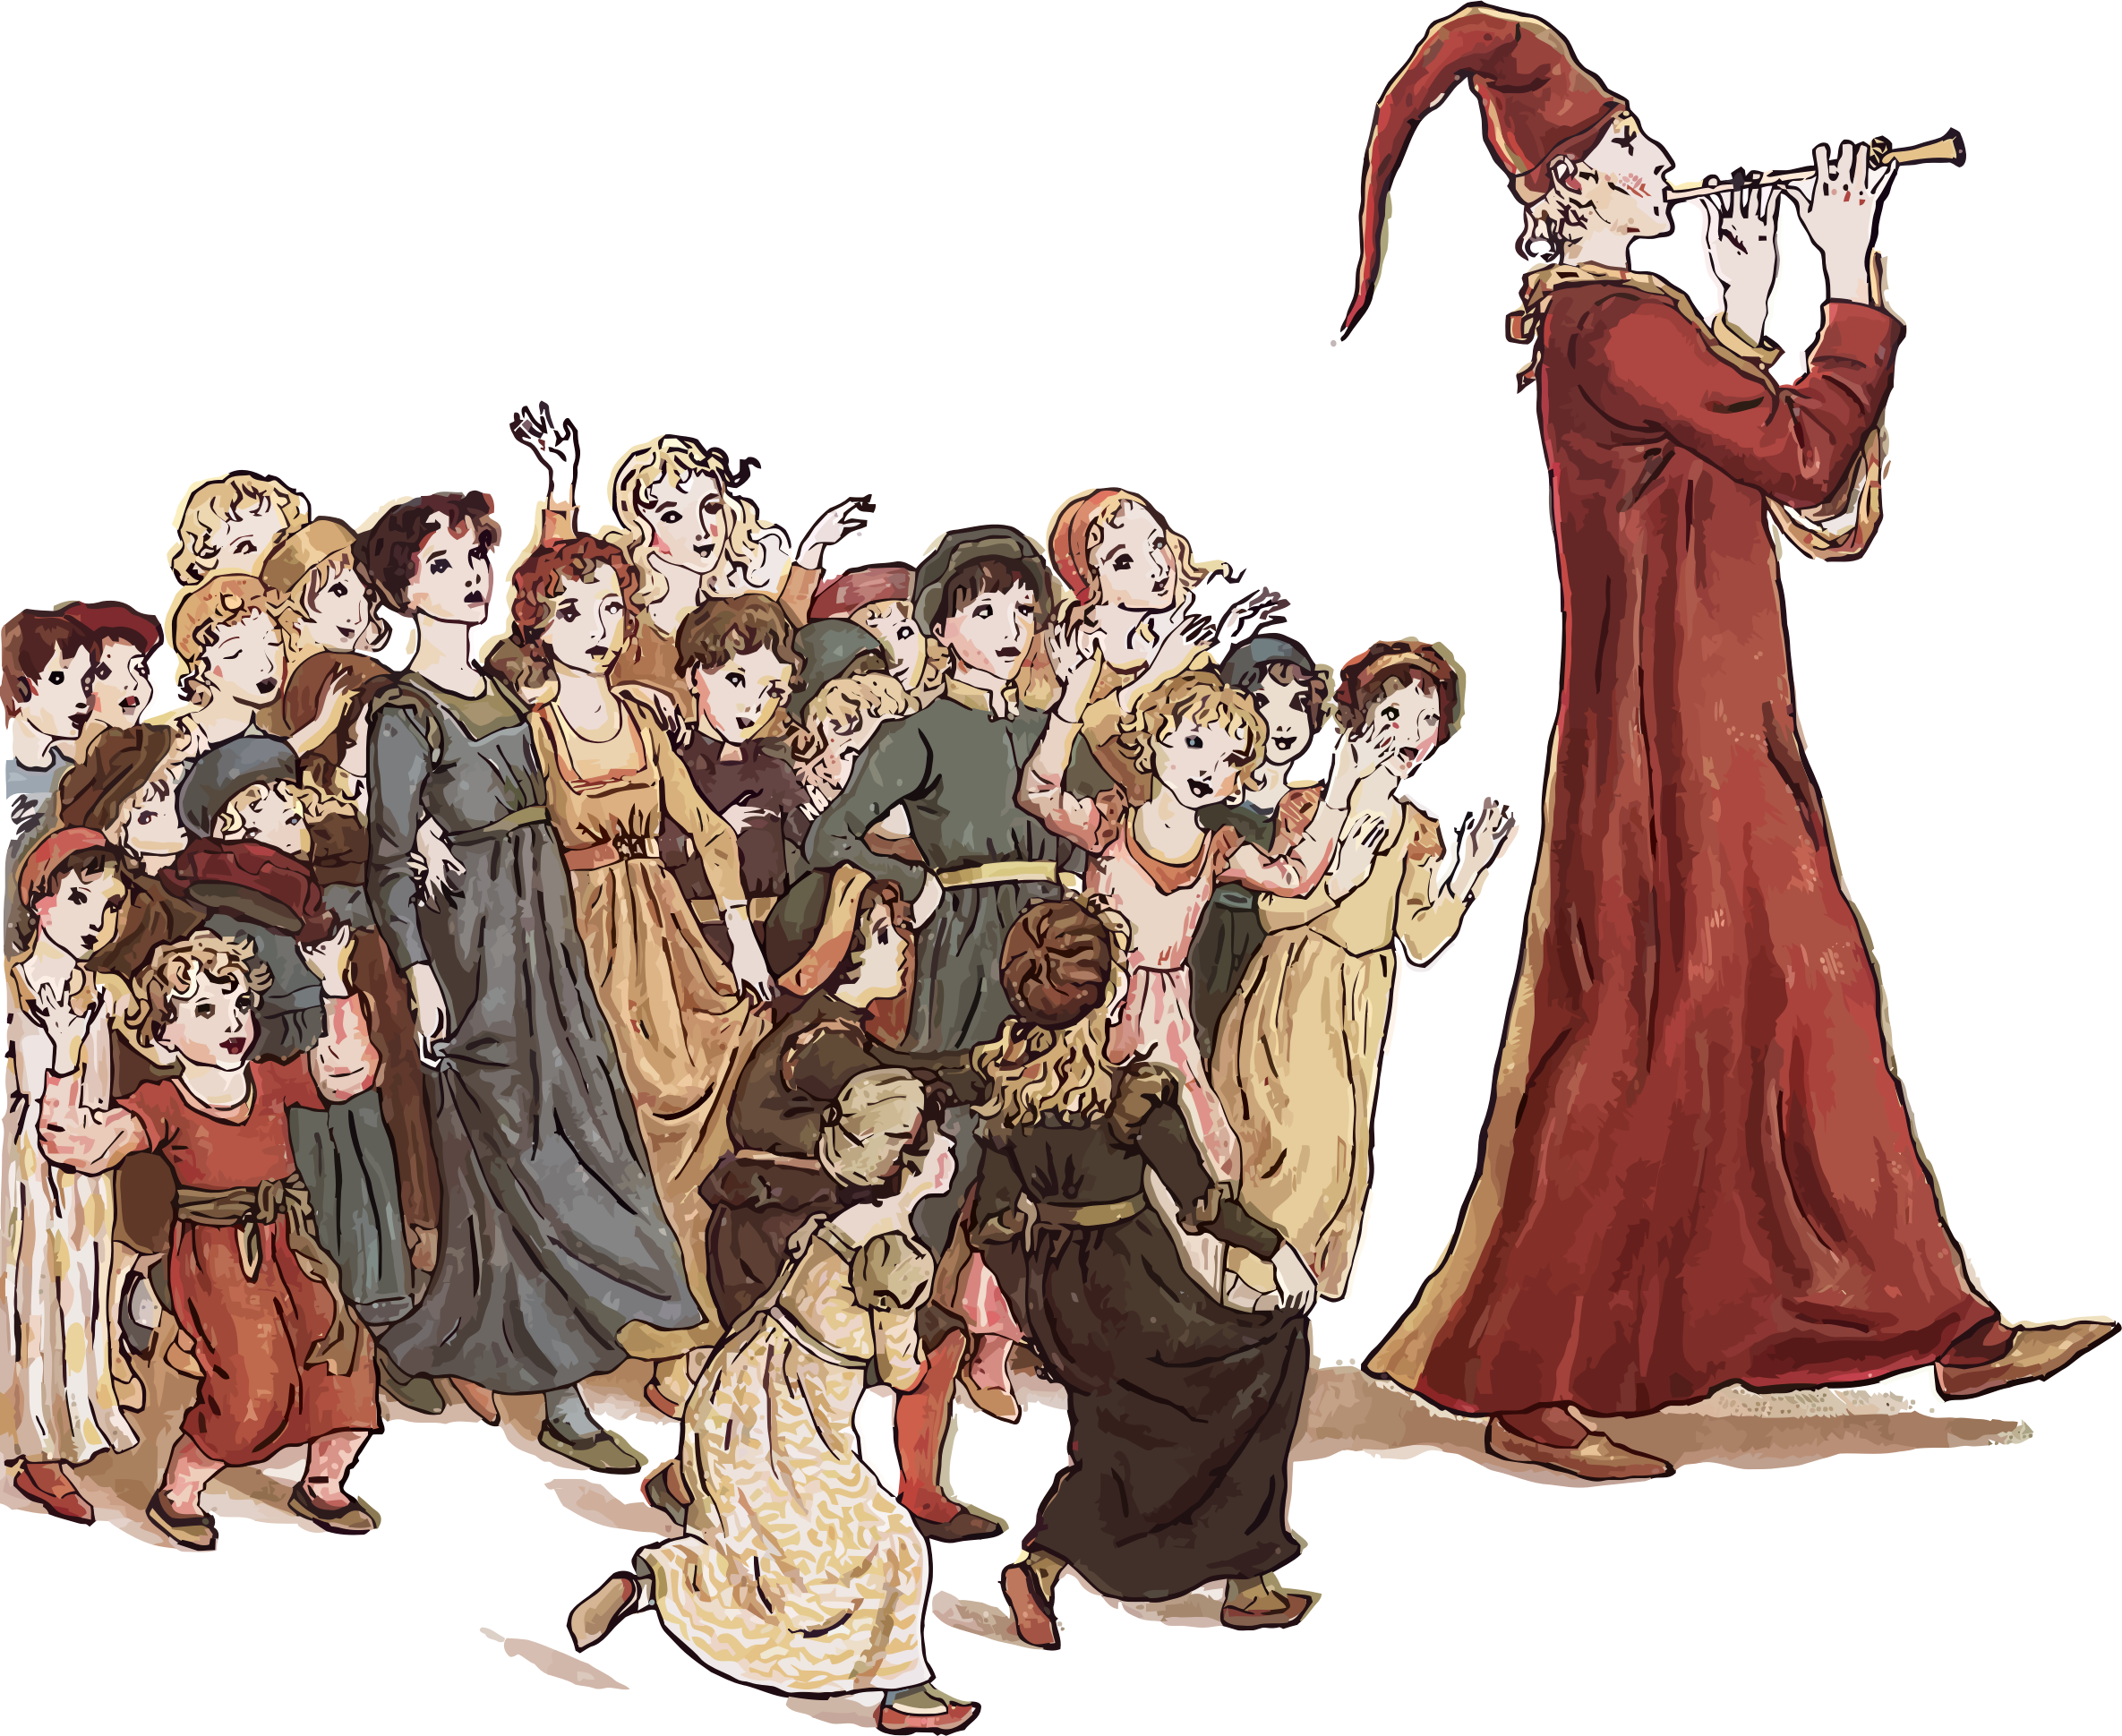 Pied Piper Of Hamelin by GDJ